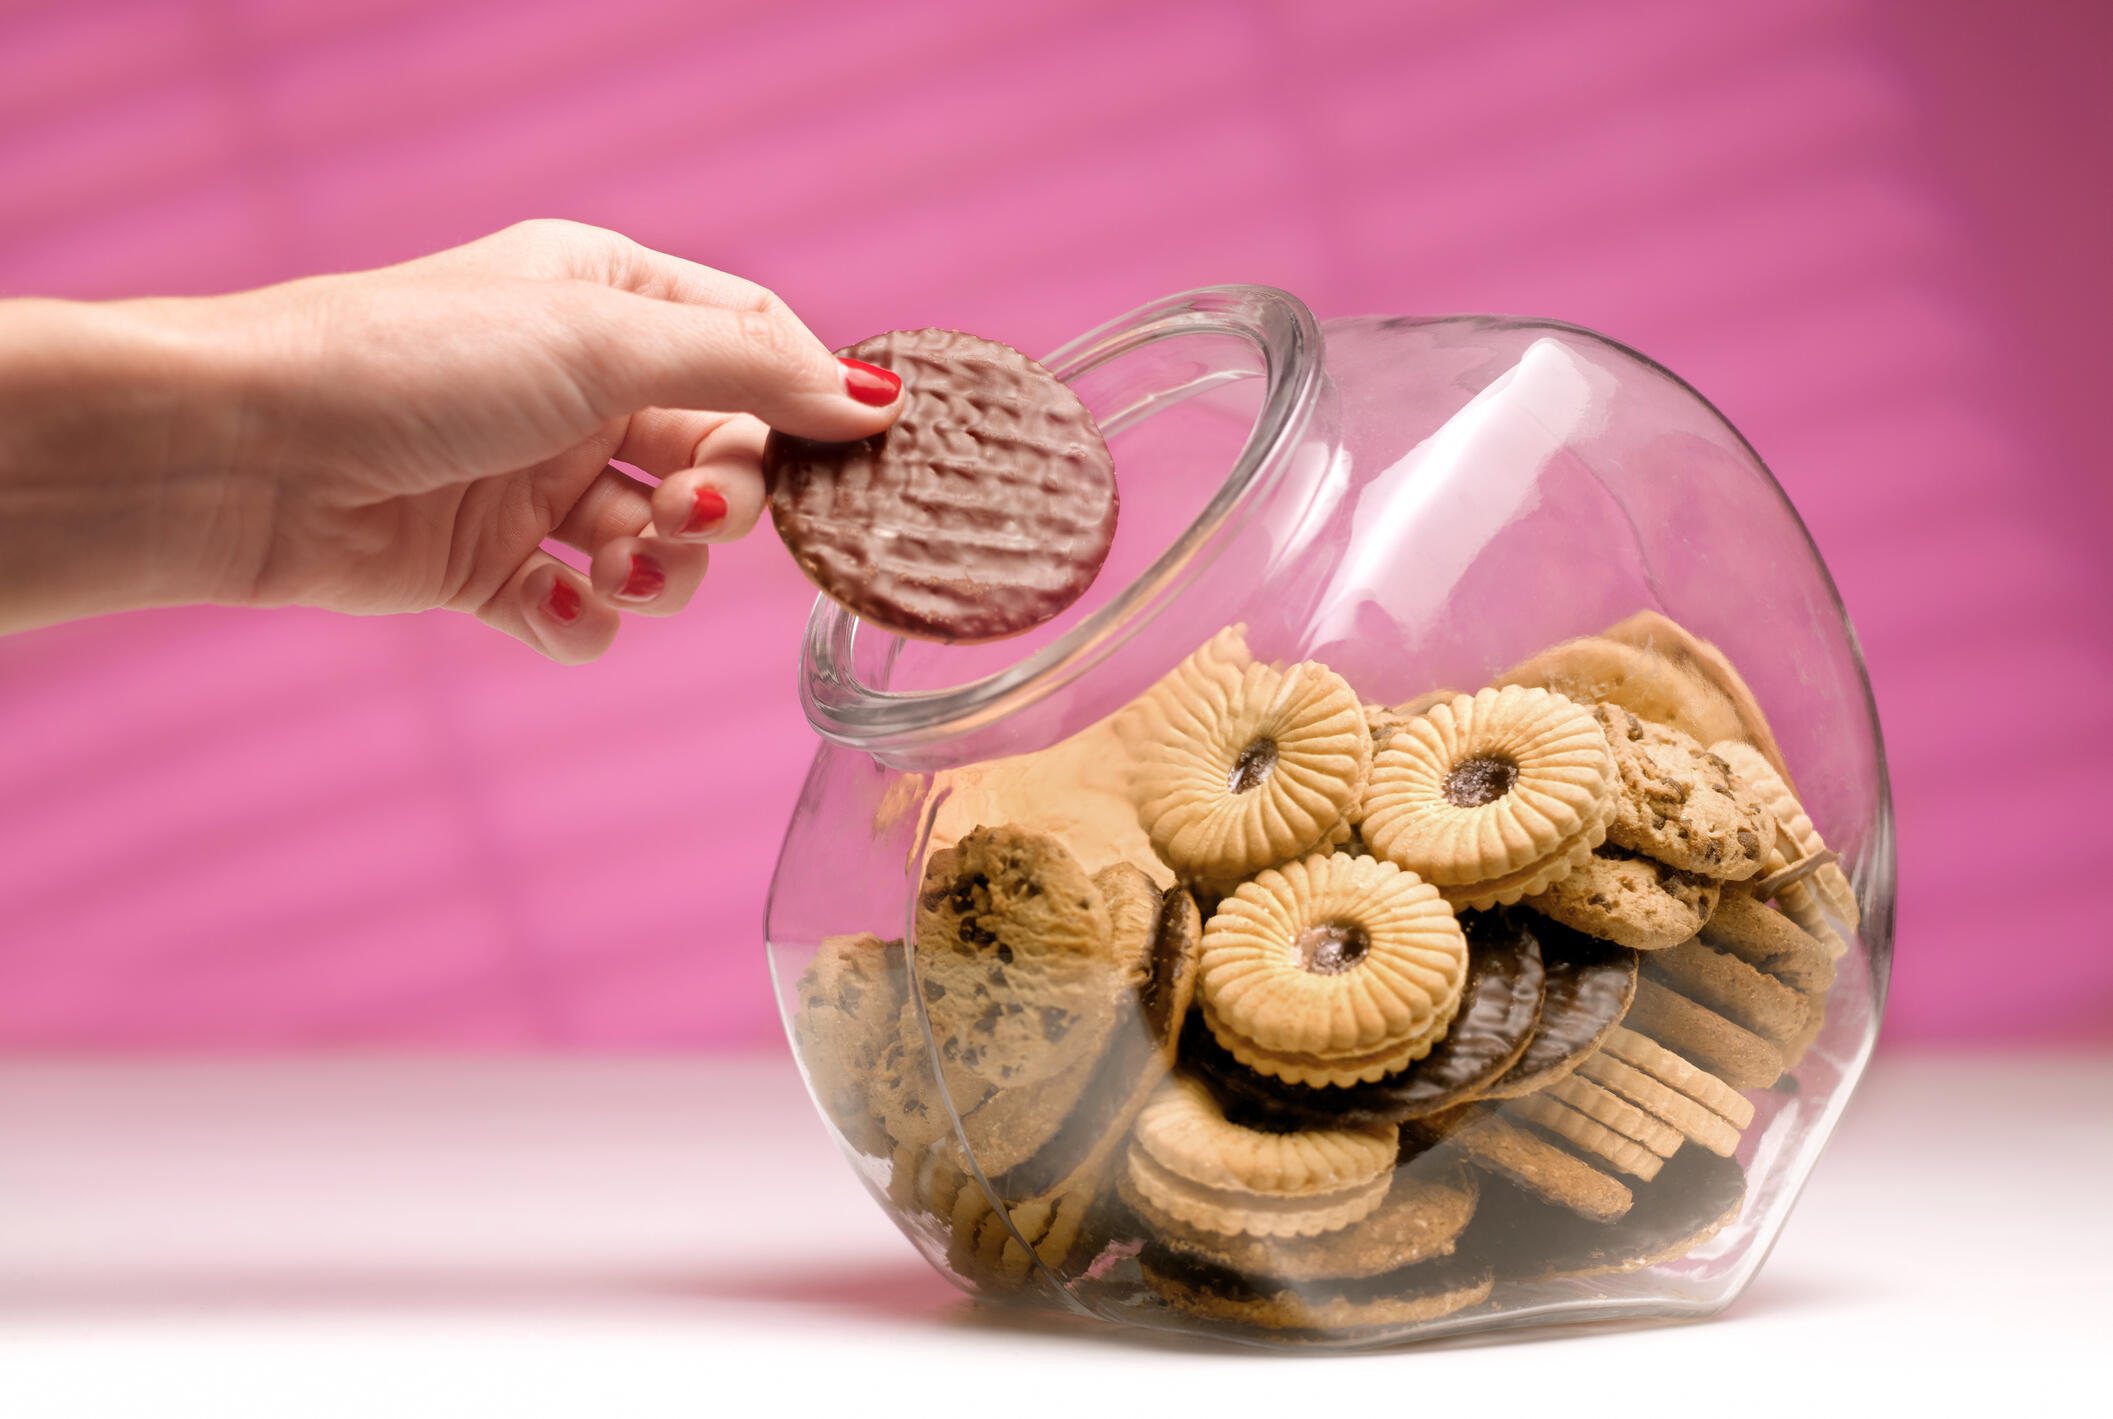 hand taking a cookie out of a cookie jar, pink background